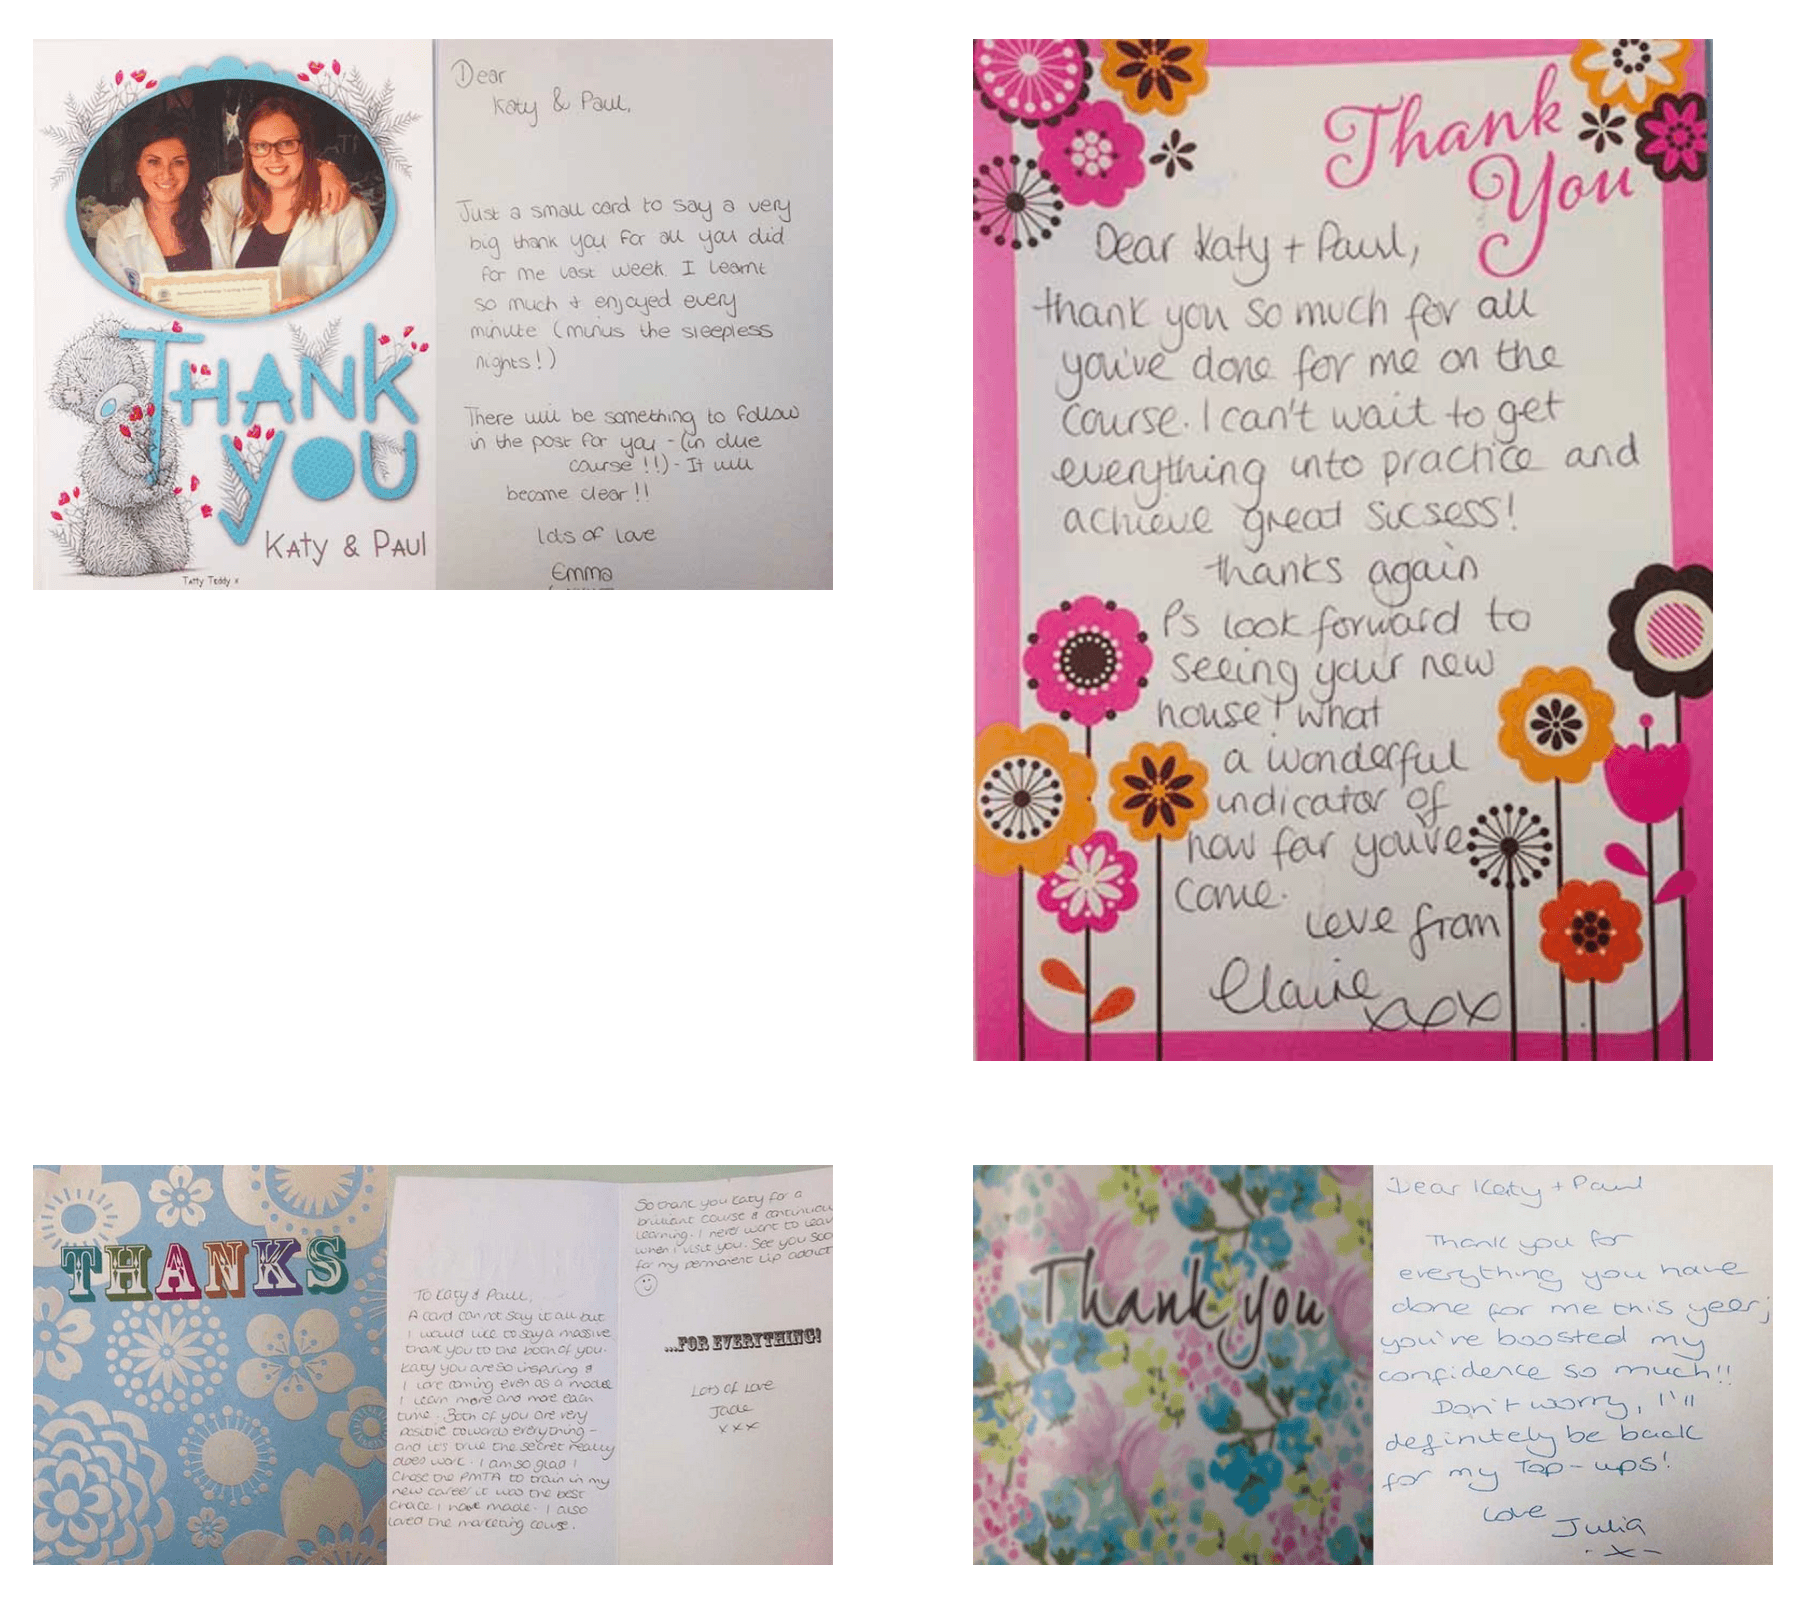 Permanent-Makeup-Training-Thank-you-cards-2